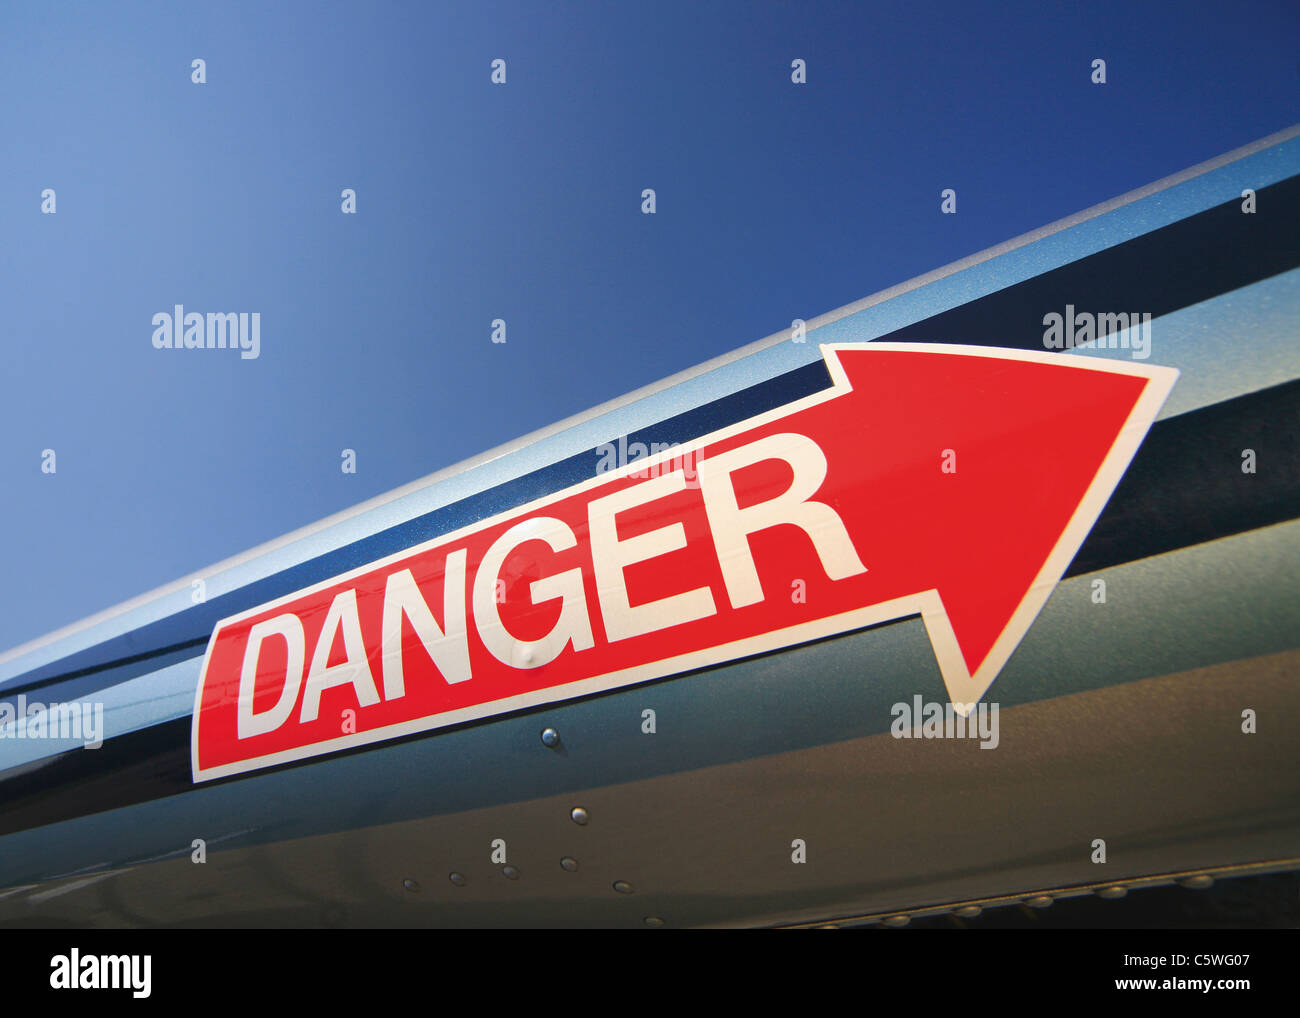 USA, Red arrow label showing danger sign - Stock Image